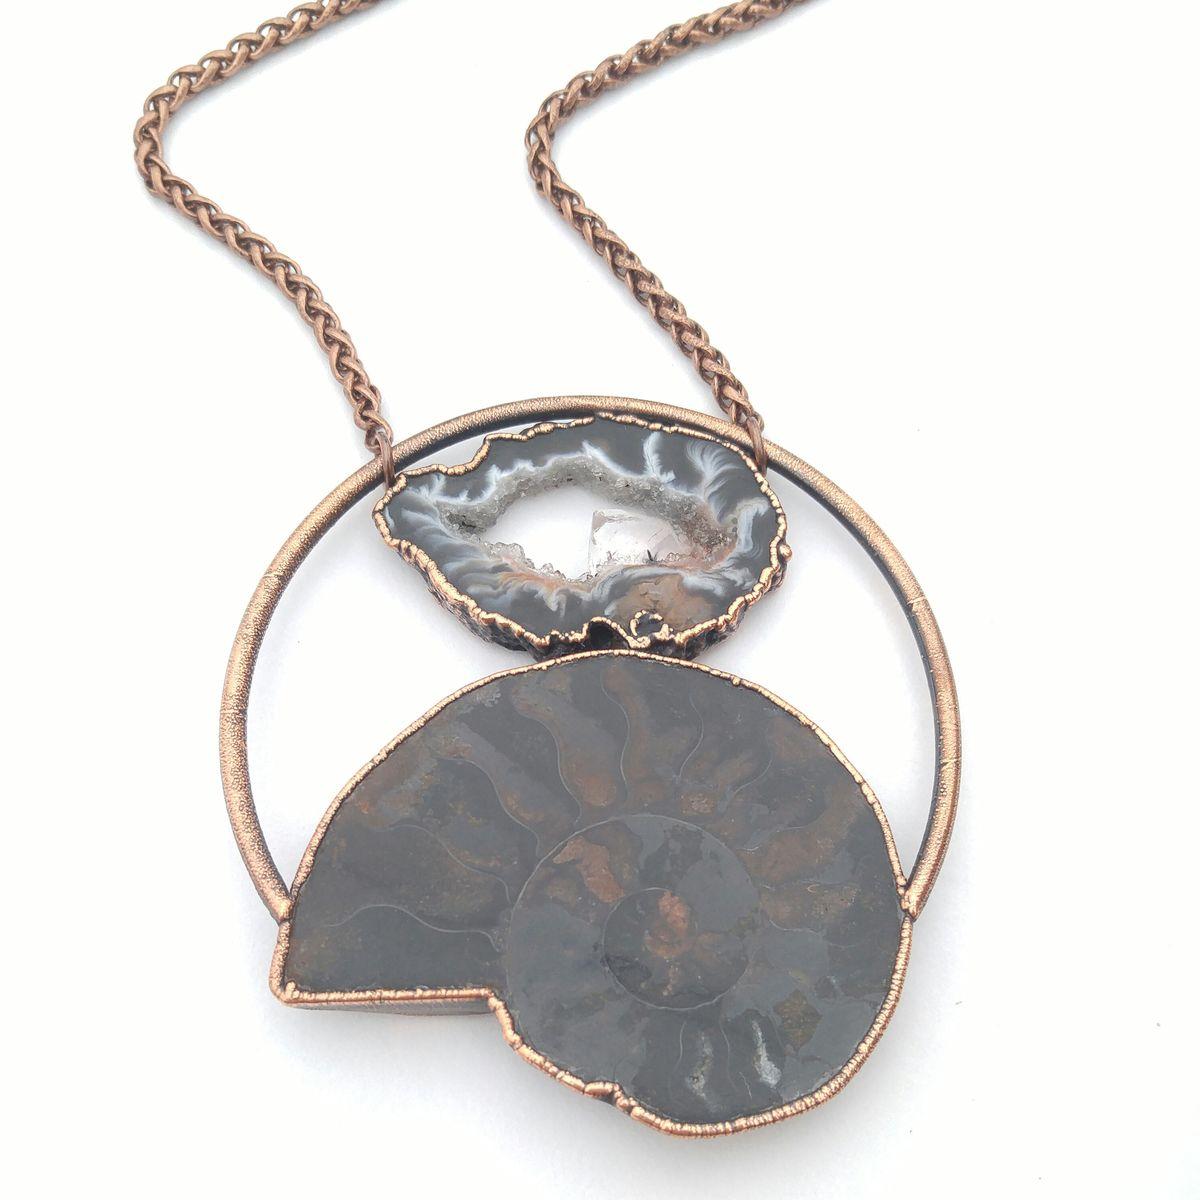 Geode Fossil Orb Necklace - product images  of